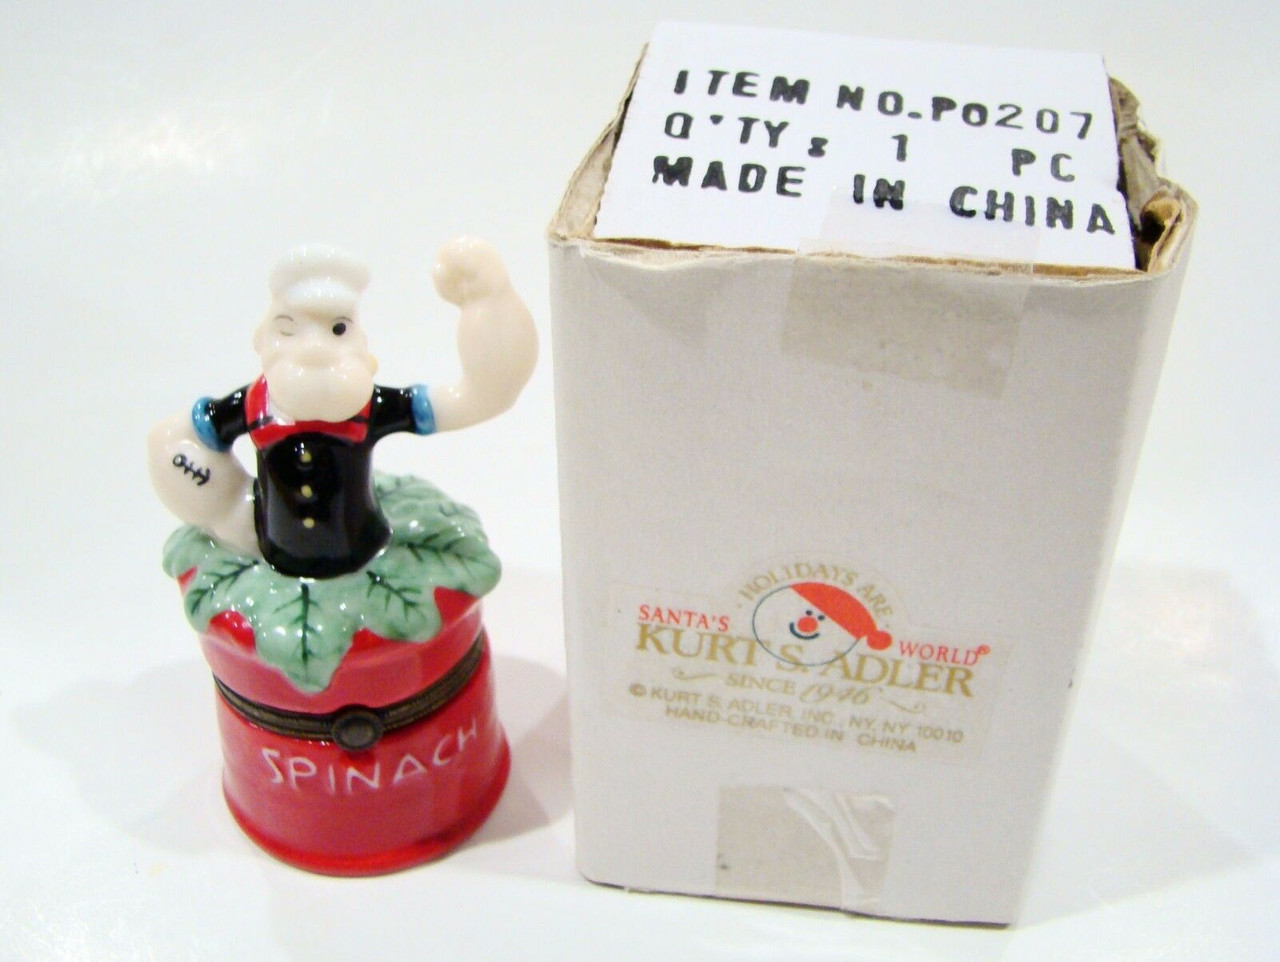 Popeye in Spinach Can Porcelain Hinged Box (P0207-KA)